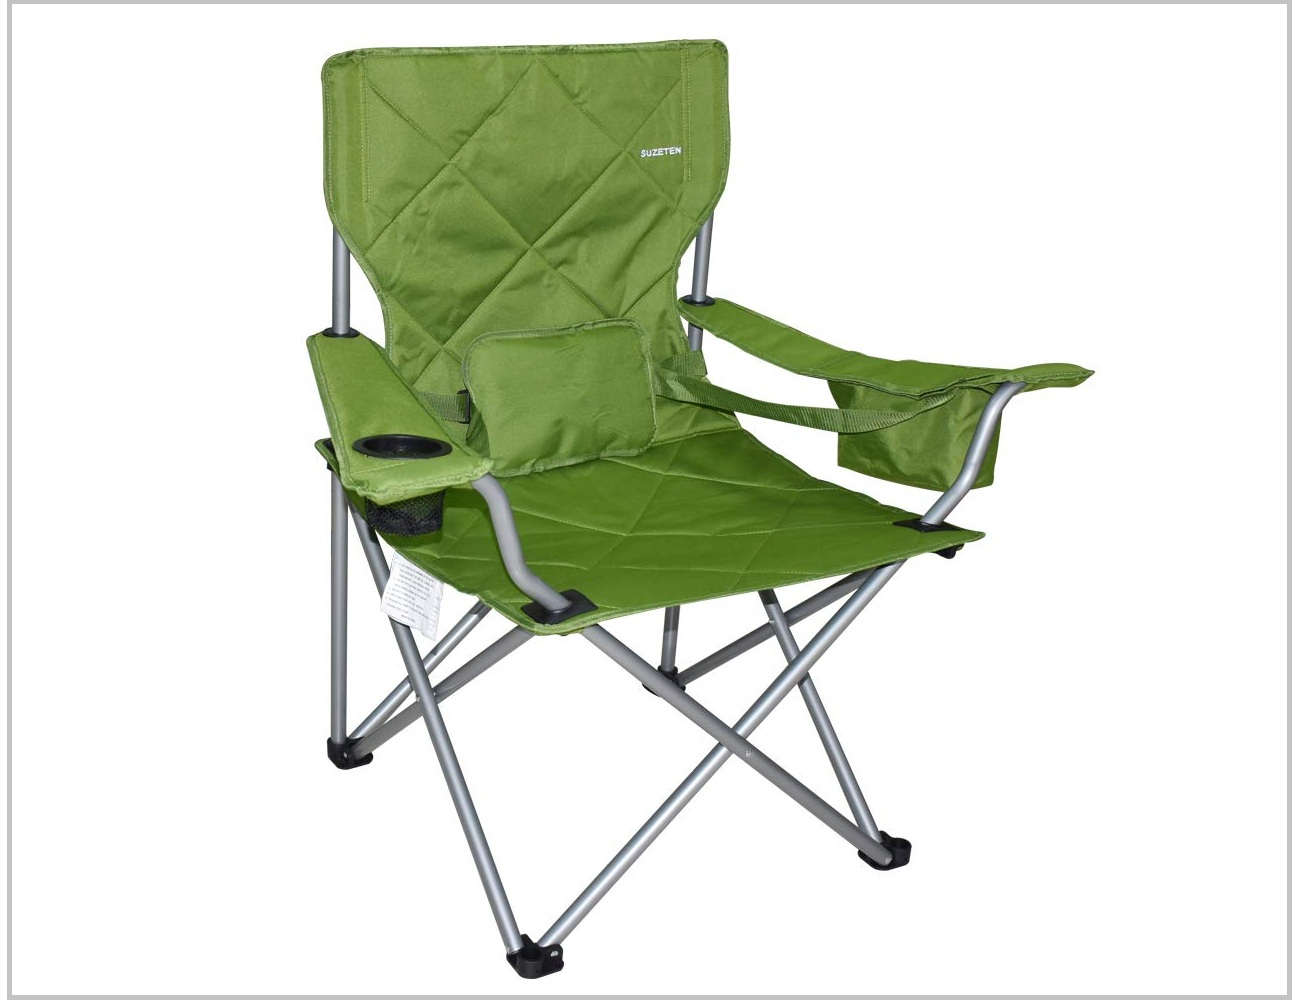 Pleasing Suzeten Oversized Folding Camping Chair Is The Best Great Dailytribune Chair Design For Home Dailytribuneorg